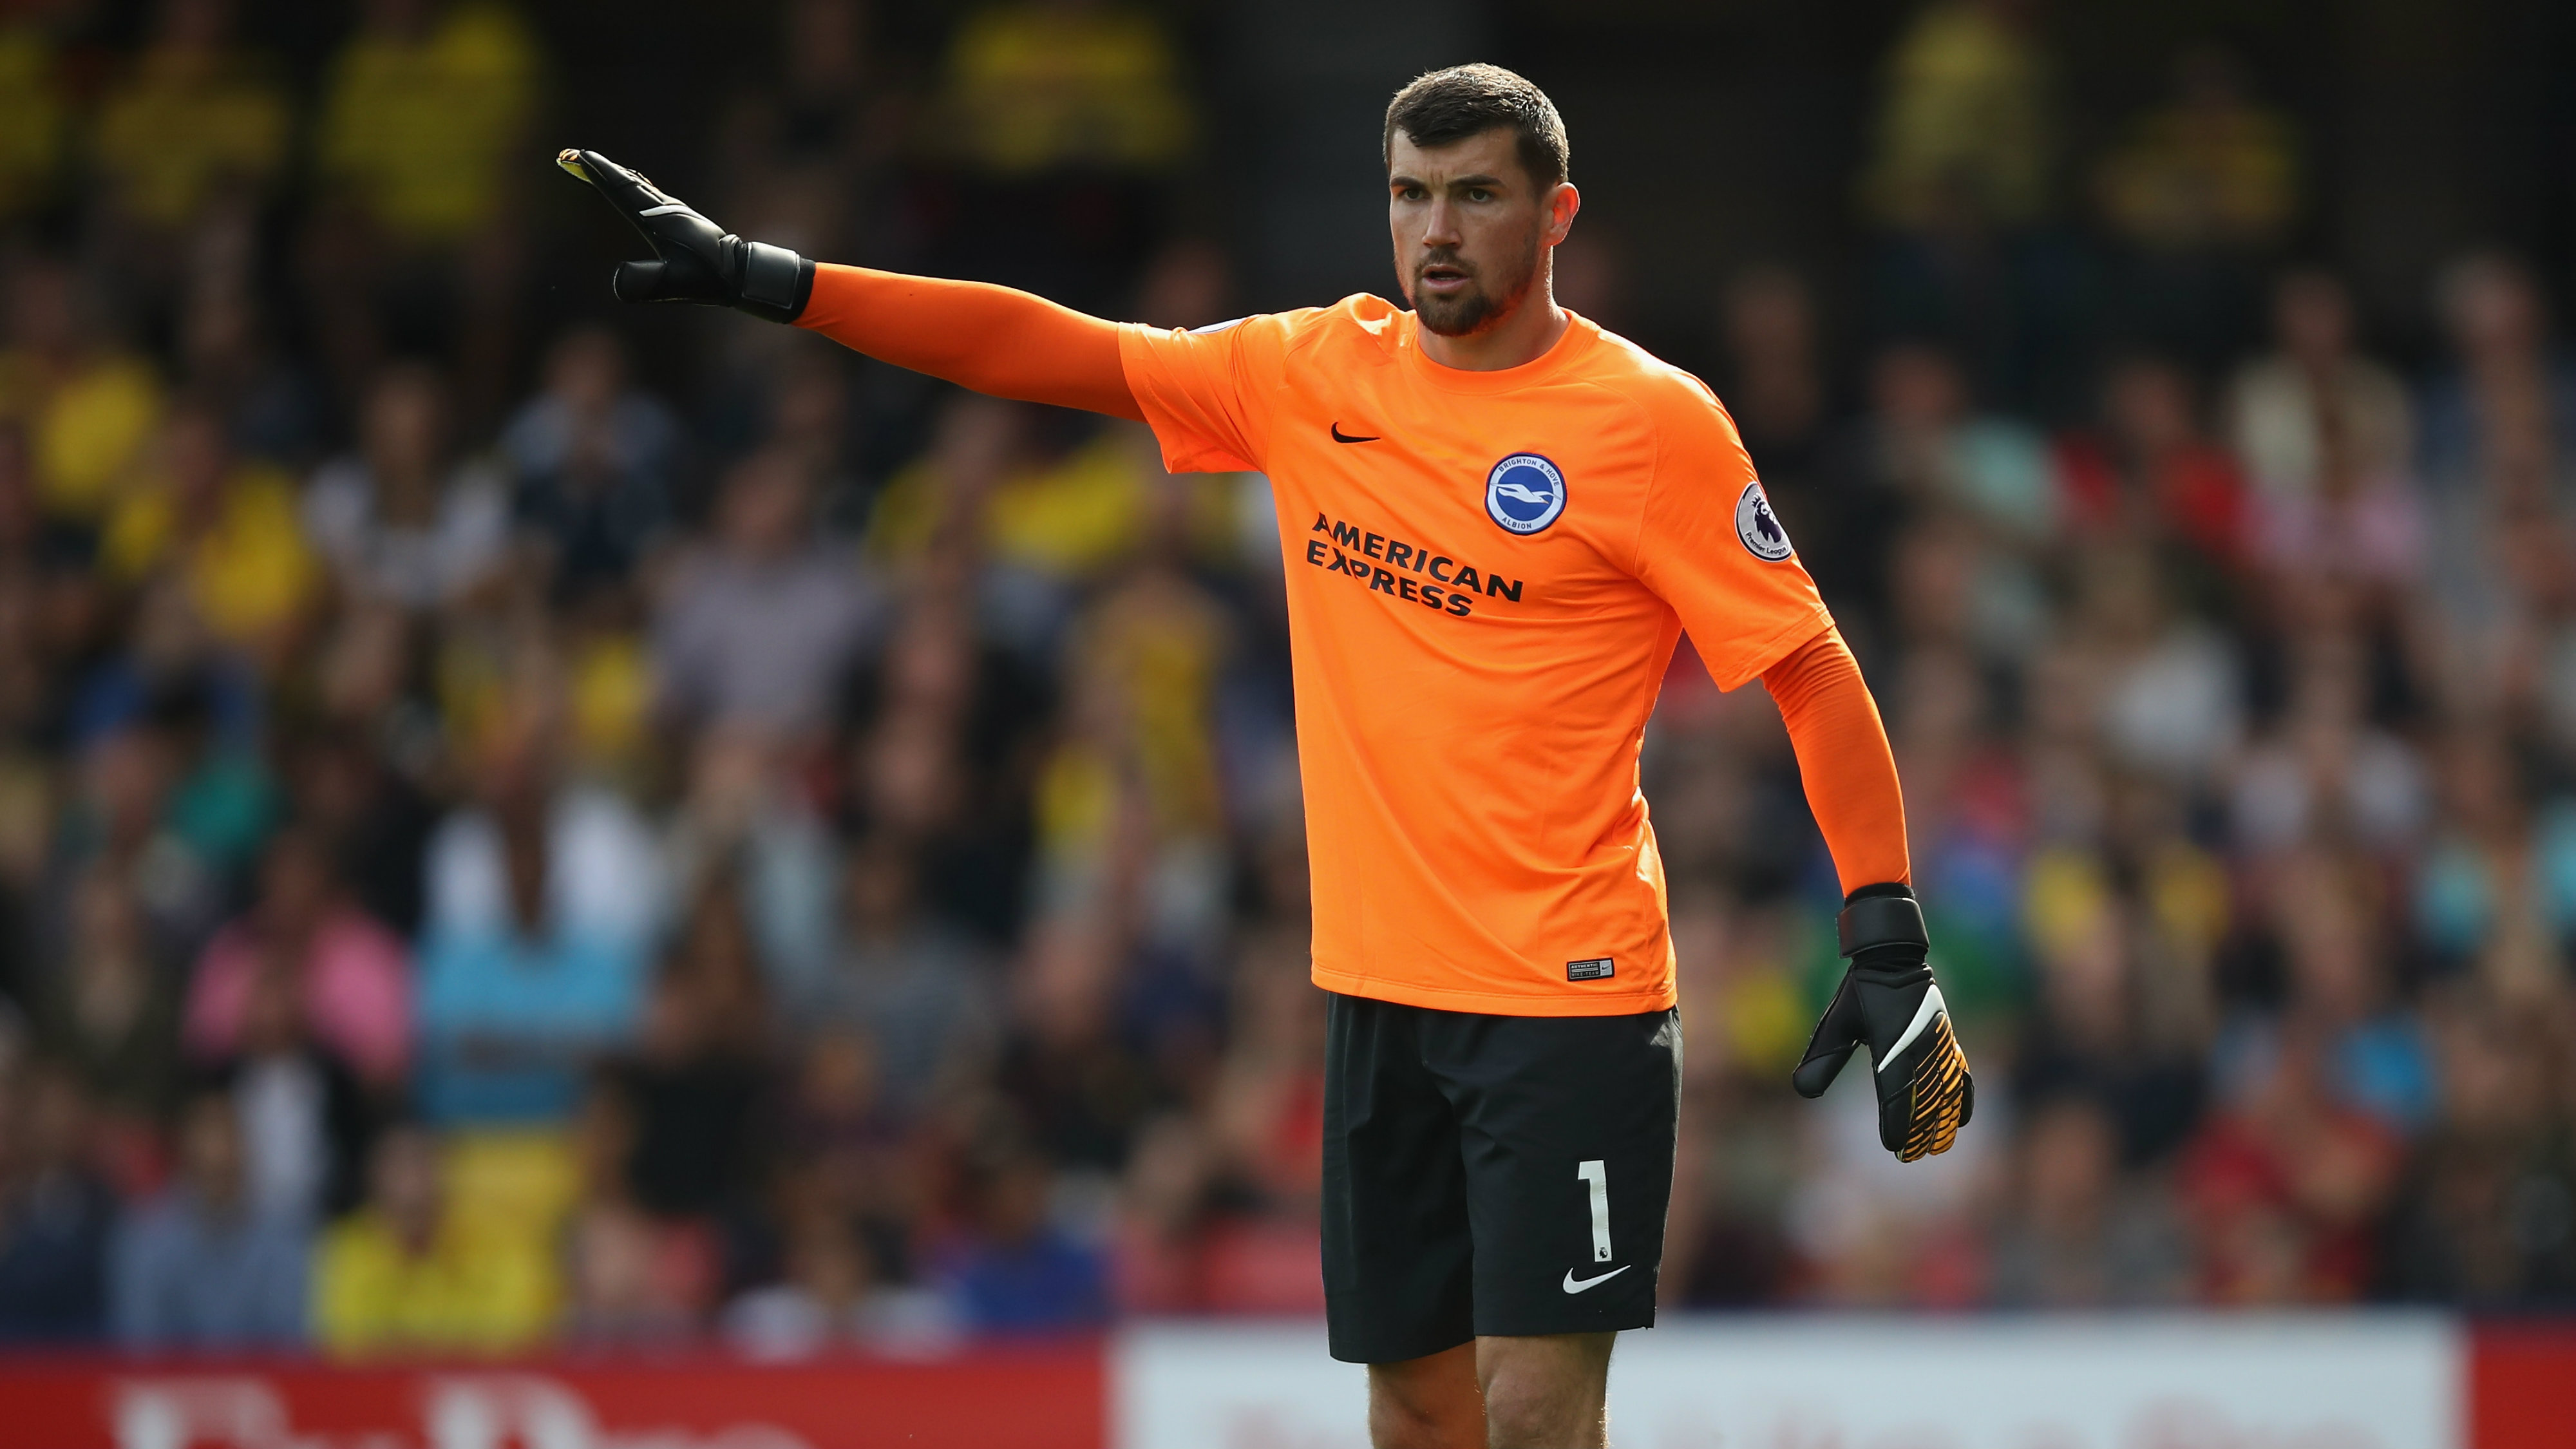 Mat Ryan kept a clean sheet in Brighton's 0-0 draw overnight.